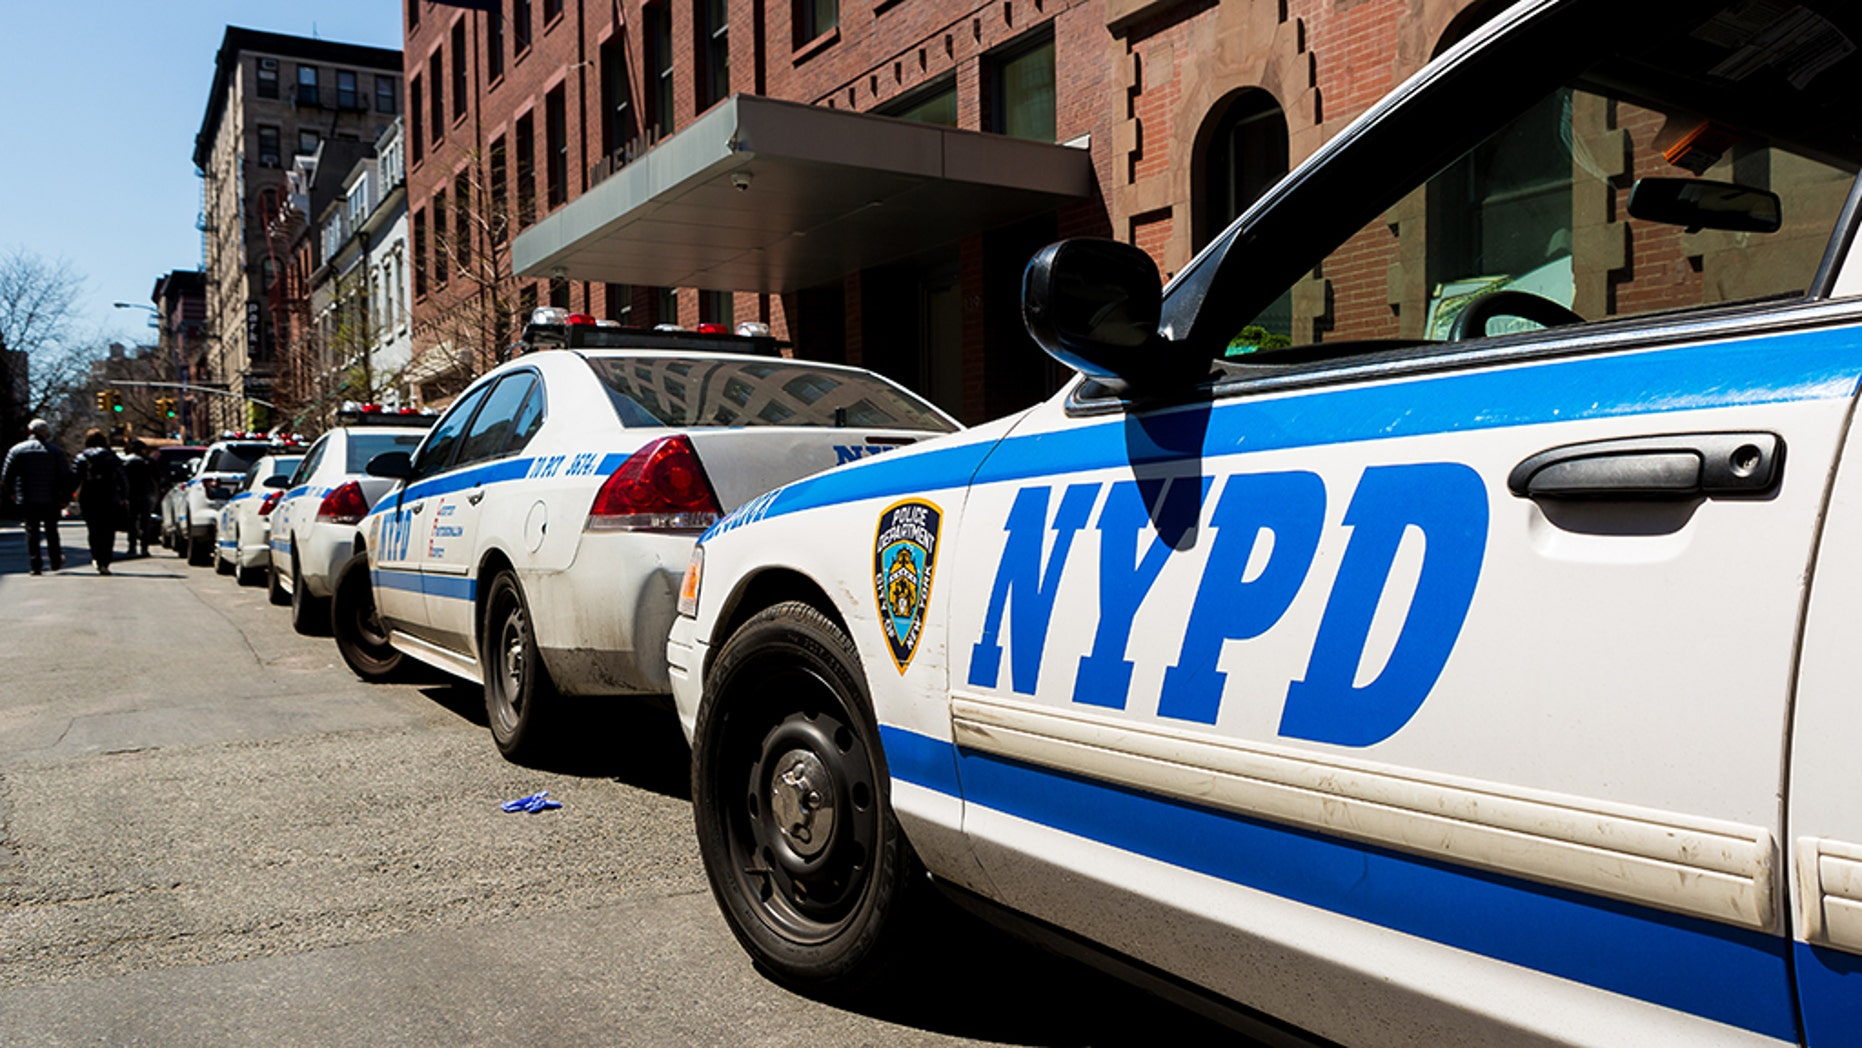 There were no shooting incidents reported in New York City this past weekend, officials said.